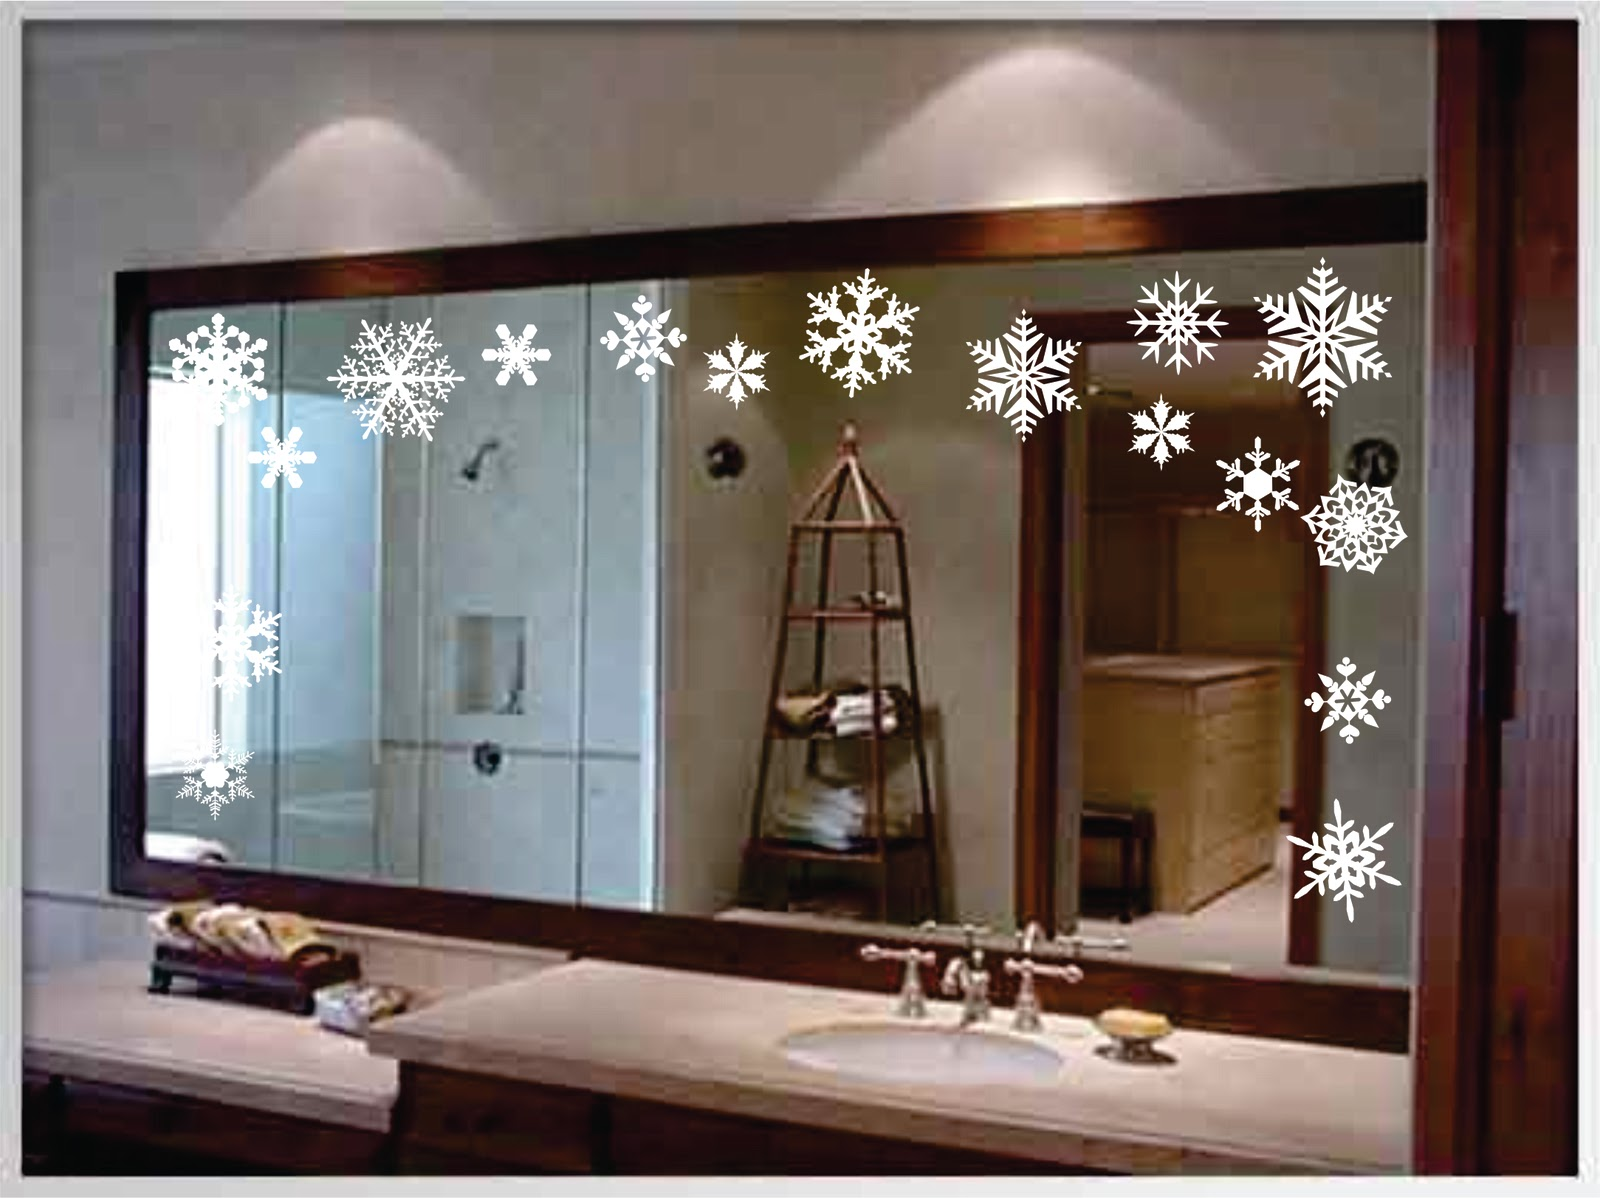 Walls That Talk: Holiday Decorating With Vinyl Wall Lettering